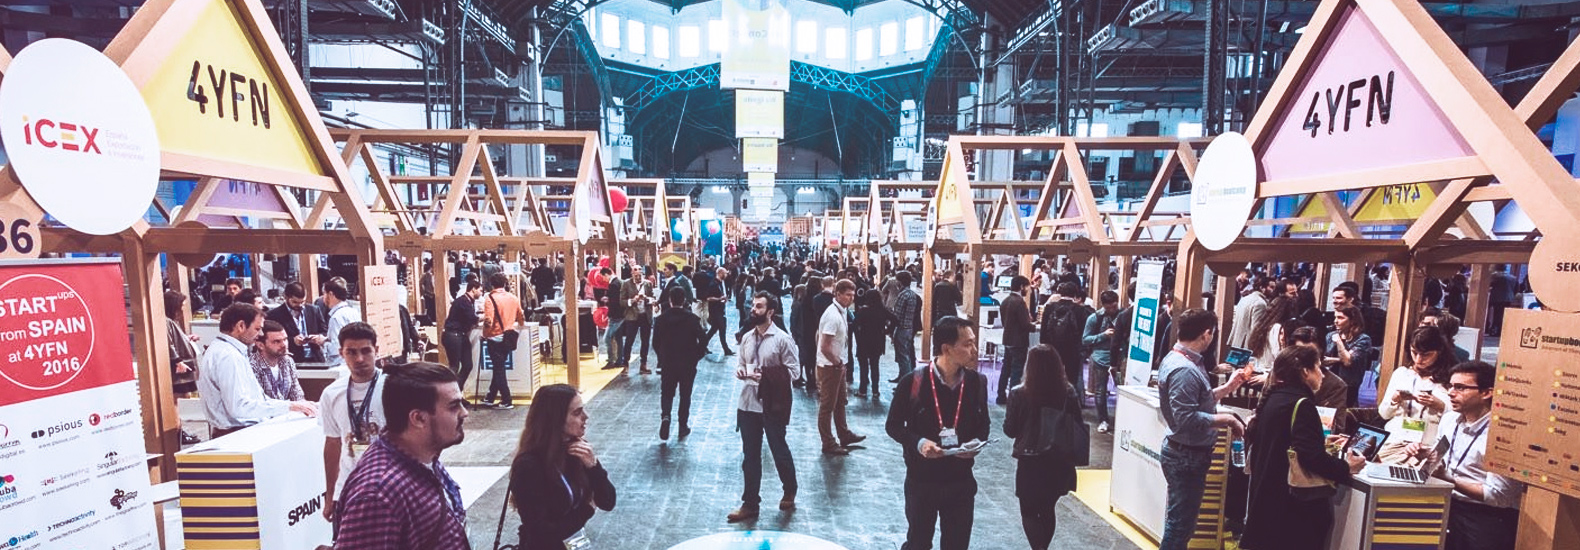 We were in the 4YFN 2018 in Barcelona